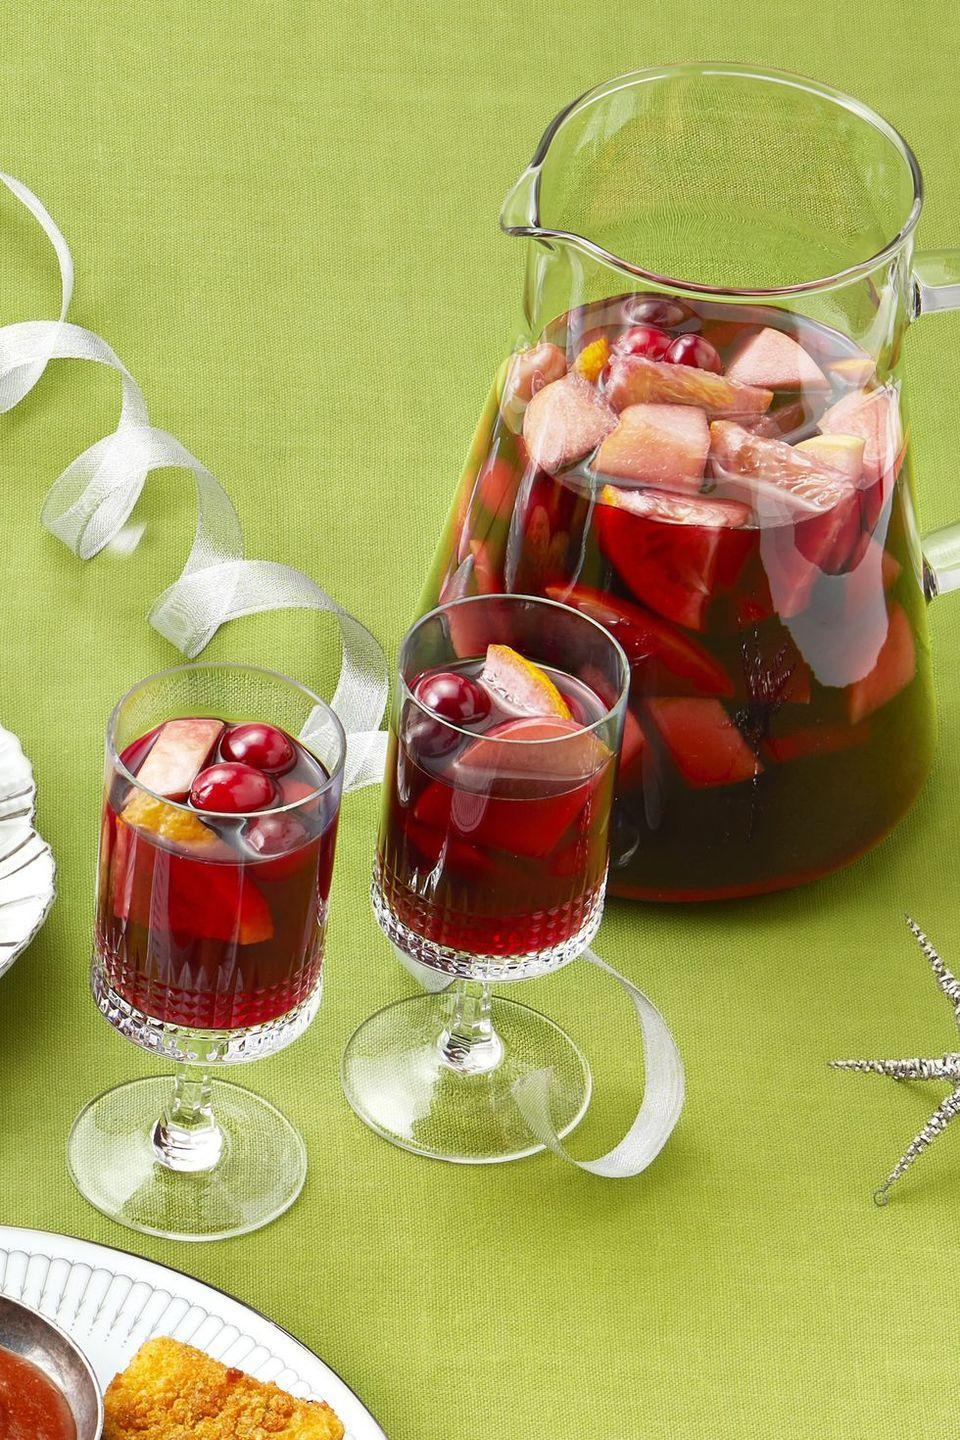 """<p>Vampire blood anyone? Apples, tart cranberries, and oranges combine together in this easy sangria perfect for entertaining. Serve it up at your Halloween bash to delight your ghoul-friends!</p><p><strong><a href=""""https://www.thepioneerwoman.com/food-cooking/recipes/a32303964/winter-sangria-recipe/"""" rel=""""nofollow noopener"""" target=""""_blank"""" data-ylk=""""slk:Get the recipe."""" class=""""link rapid-noclick-resp"""">Get the recipe.</a></strong></p><p><a class=""""link rapid-noclick-resp"""" href=""""https://go.redirectingat.com?id=74968X1596630&url=https%3A%2F%2Fwww.walmart.com%2Fip%2FLibbey-Straight-Sided-Glass-Pitcher%2F544076719&sref=https%3A%2F%2Fwww.thepioneerwoman.com%2Fholidays-celebrations%2Fg36792938%2Fhalloween-punch-recipes%2F"""" rel=""""nofollow noopener"""" target=""""_blank"""" data-ylk=""""slk:SHOP PITCHERS"""">SHOP PITCHERS</a></p>"""